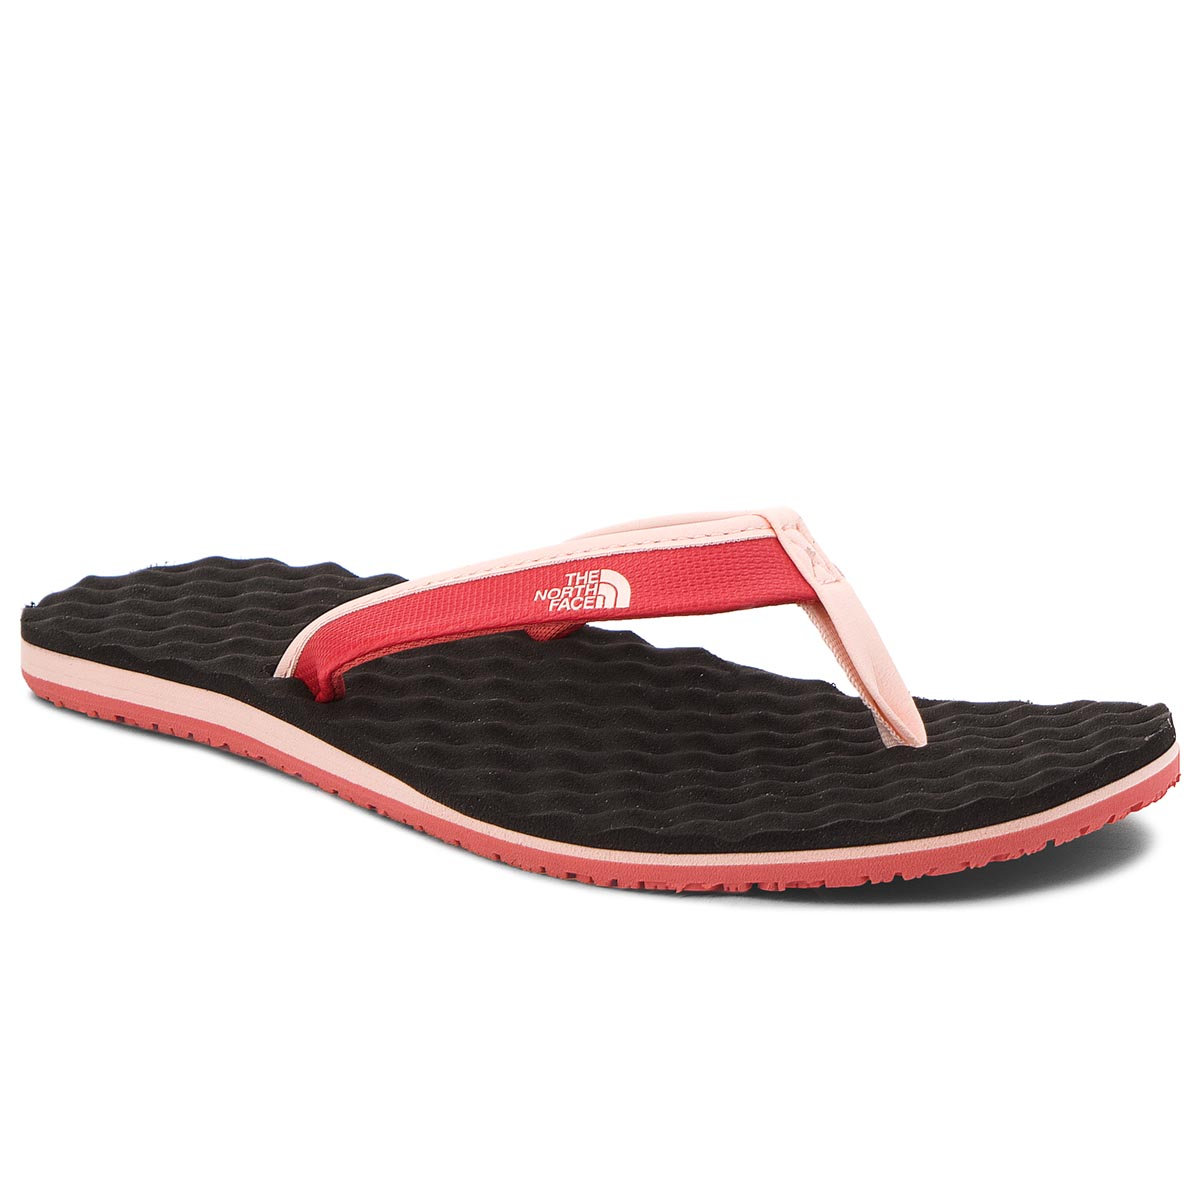 Flip flop THE NORTH FACE - Base Camp Mini T0A06Q4FF Snbkrd/Evngsdpk